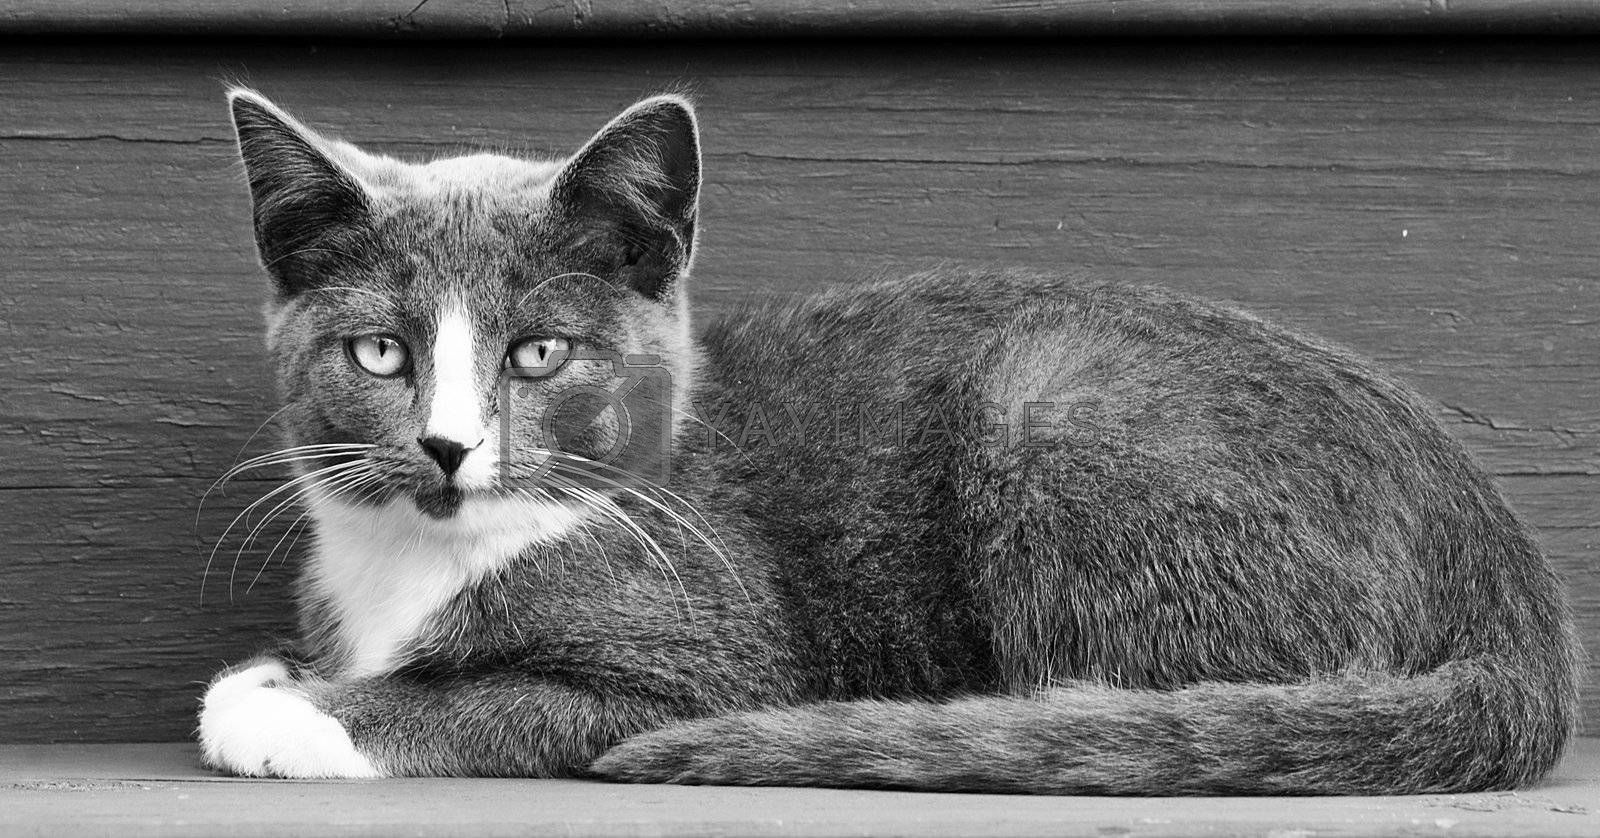 A black and white image of a gray and white kitten laying down.